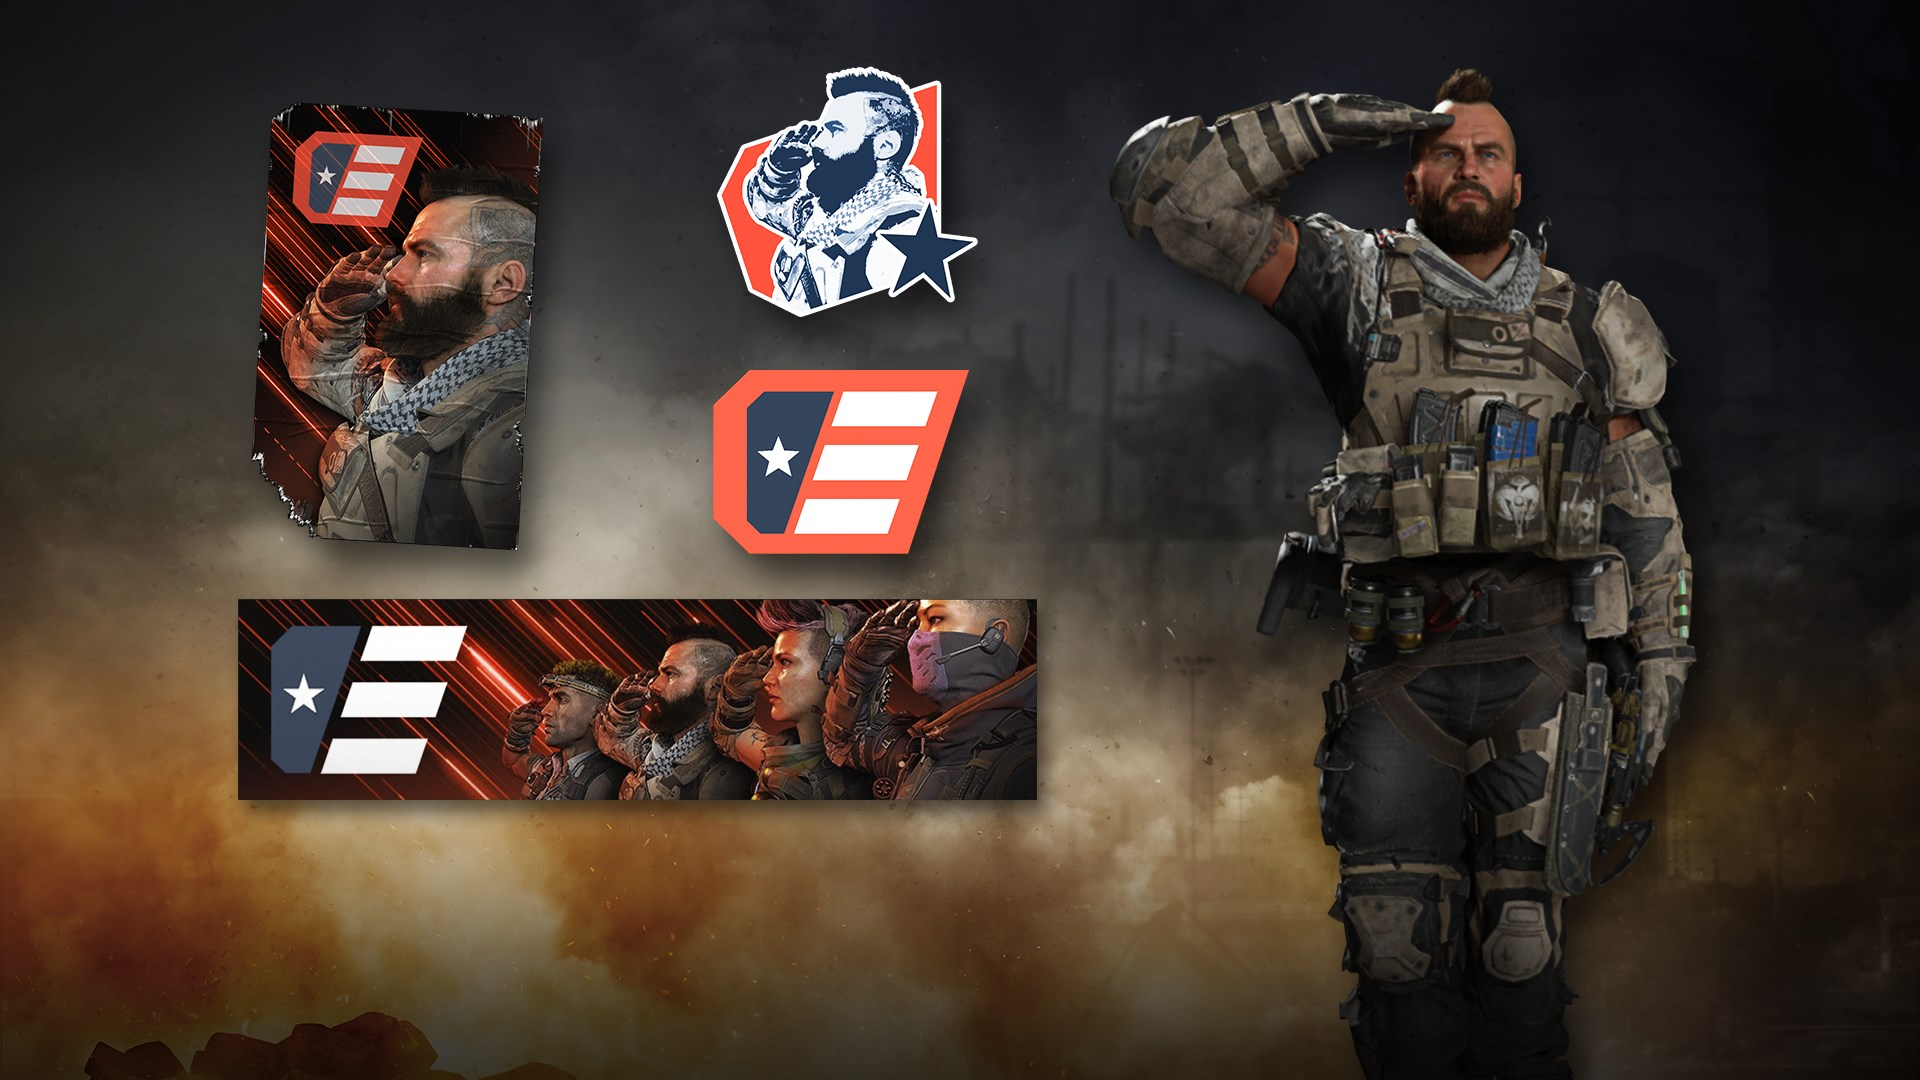 Call of Duty®: Black Ops 4 - C.O.D.E. Salute Pack